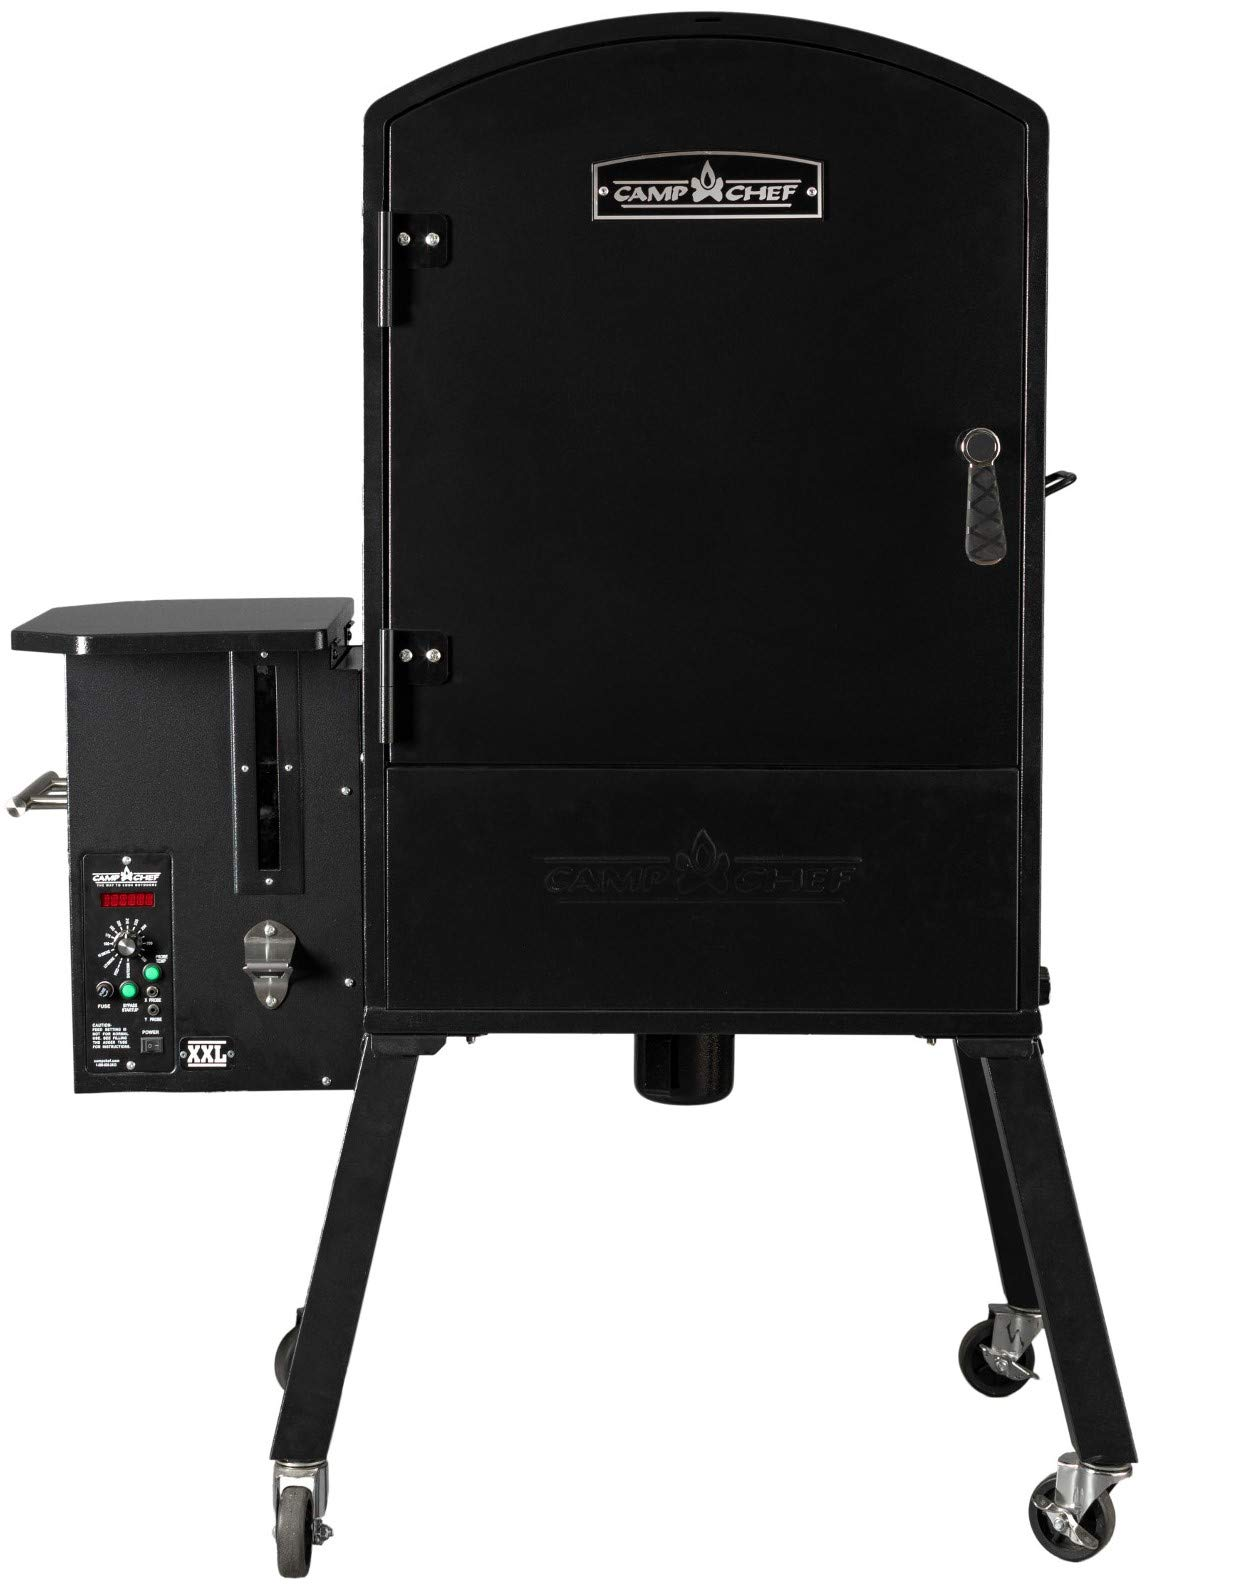 Camp Chef XXL Vertical Pellet Grill and Smoker (PGVXXL) - Smart Smoke Technology - Patented Ash Cleanout - Digital Display - Pellet Purge System by Camp Chef (Image #3)